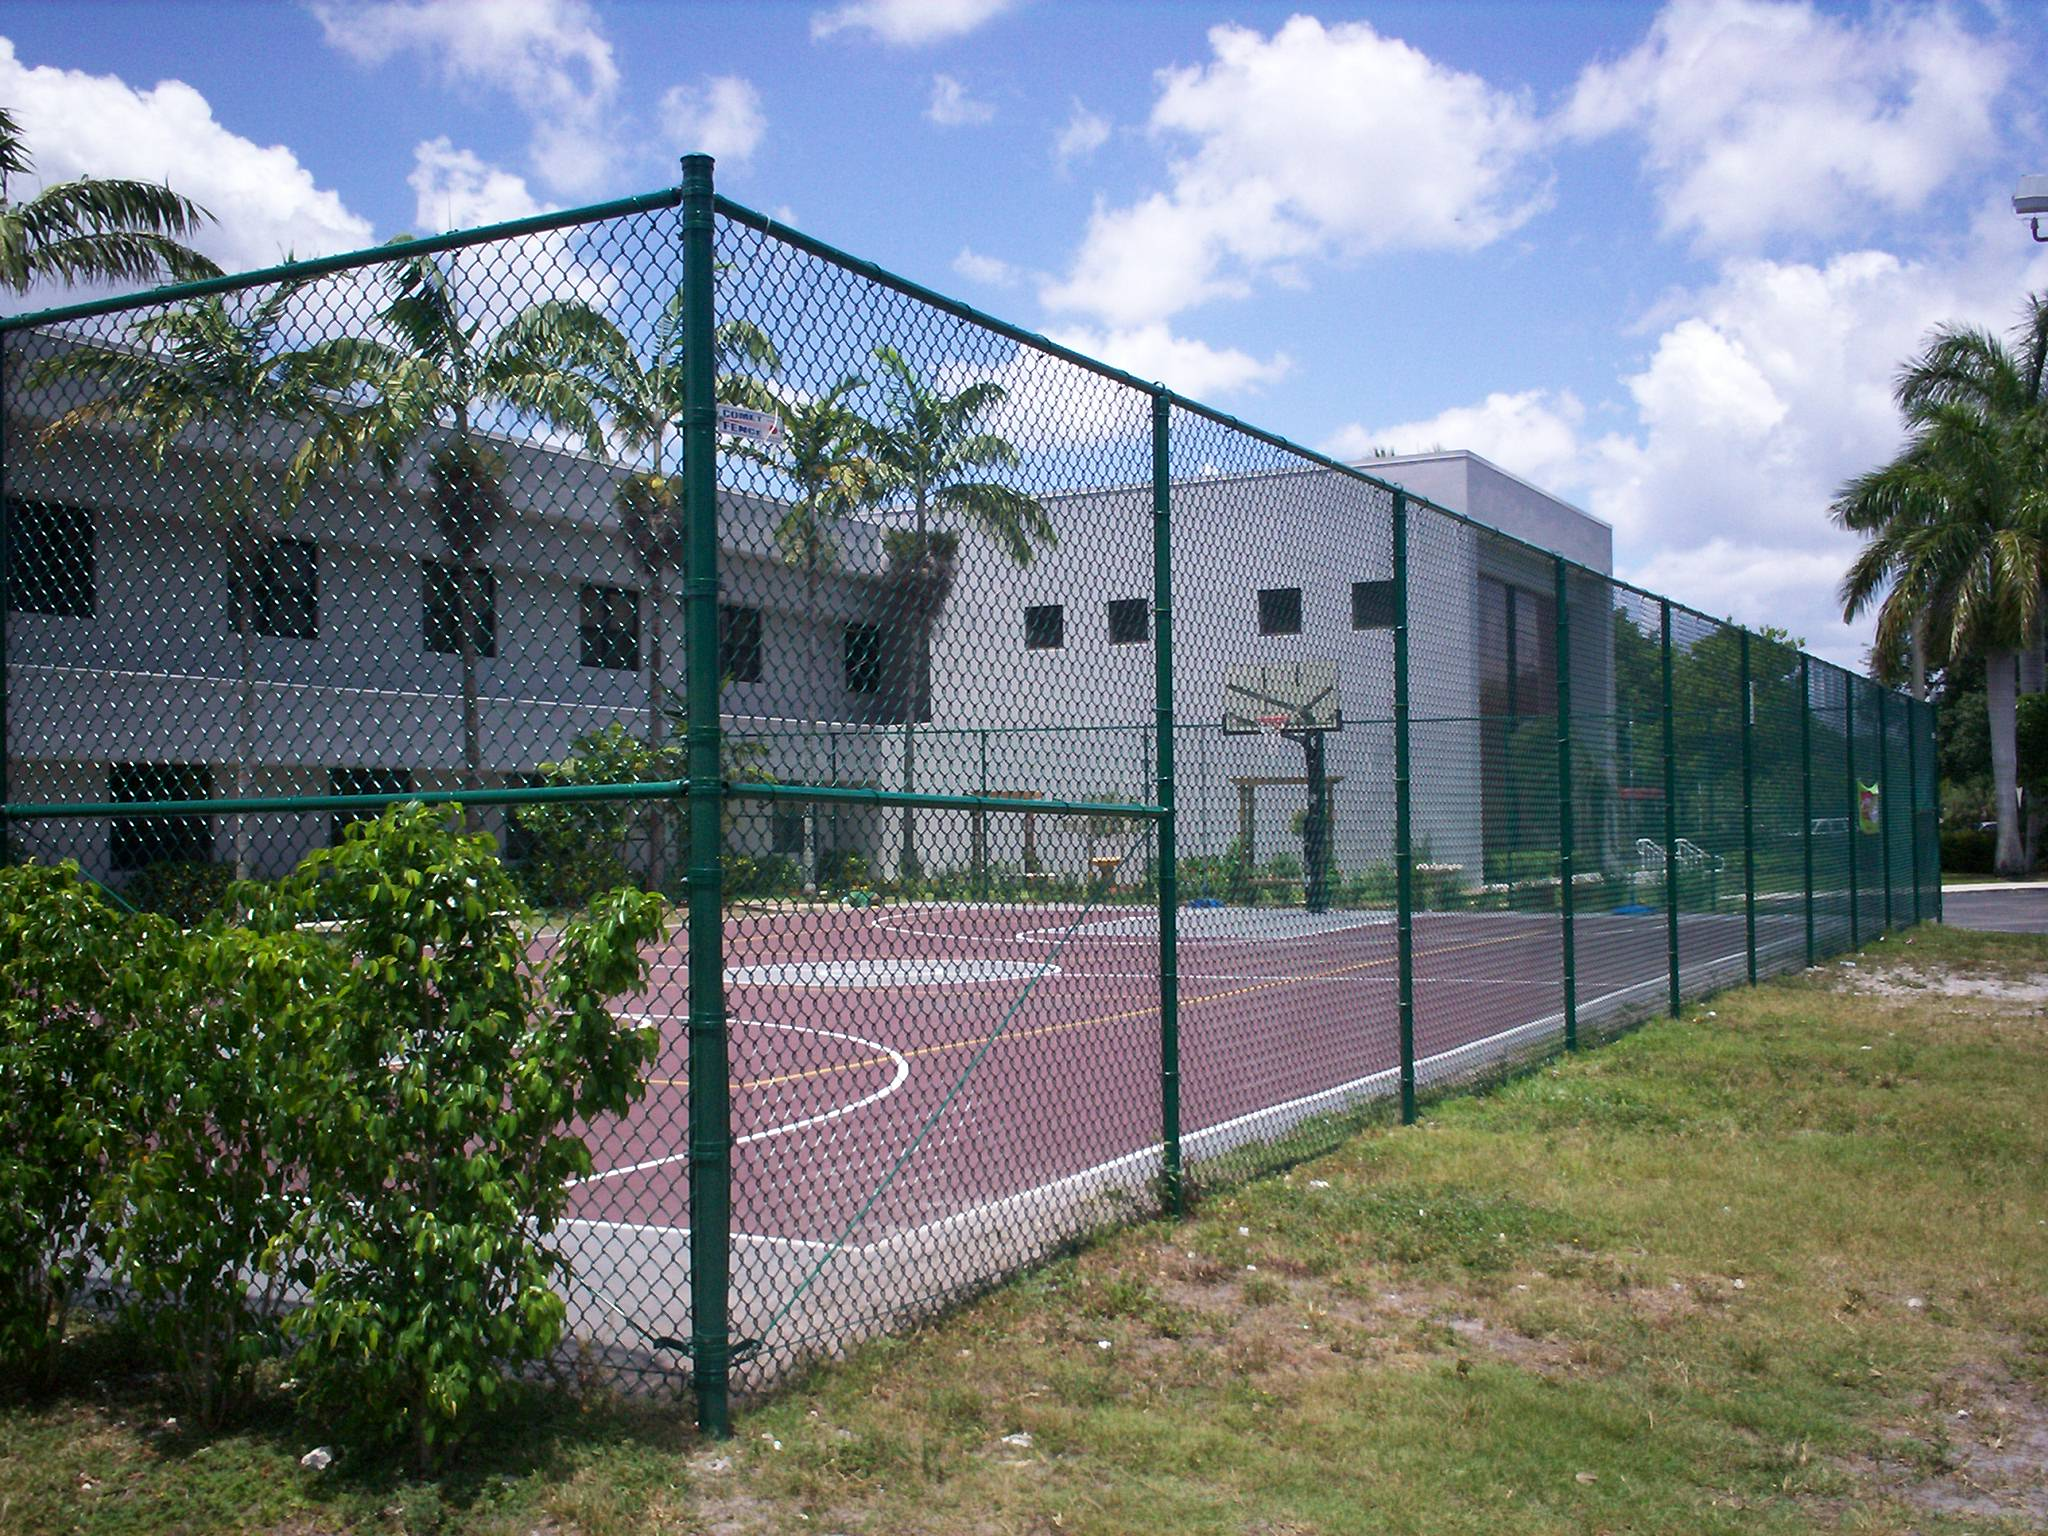 FENCE-MATERIAL COM Chain Link Fence Packages & Fence Parts